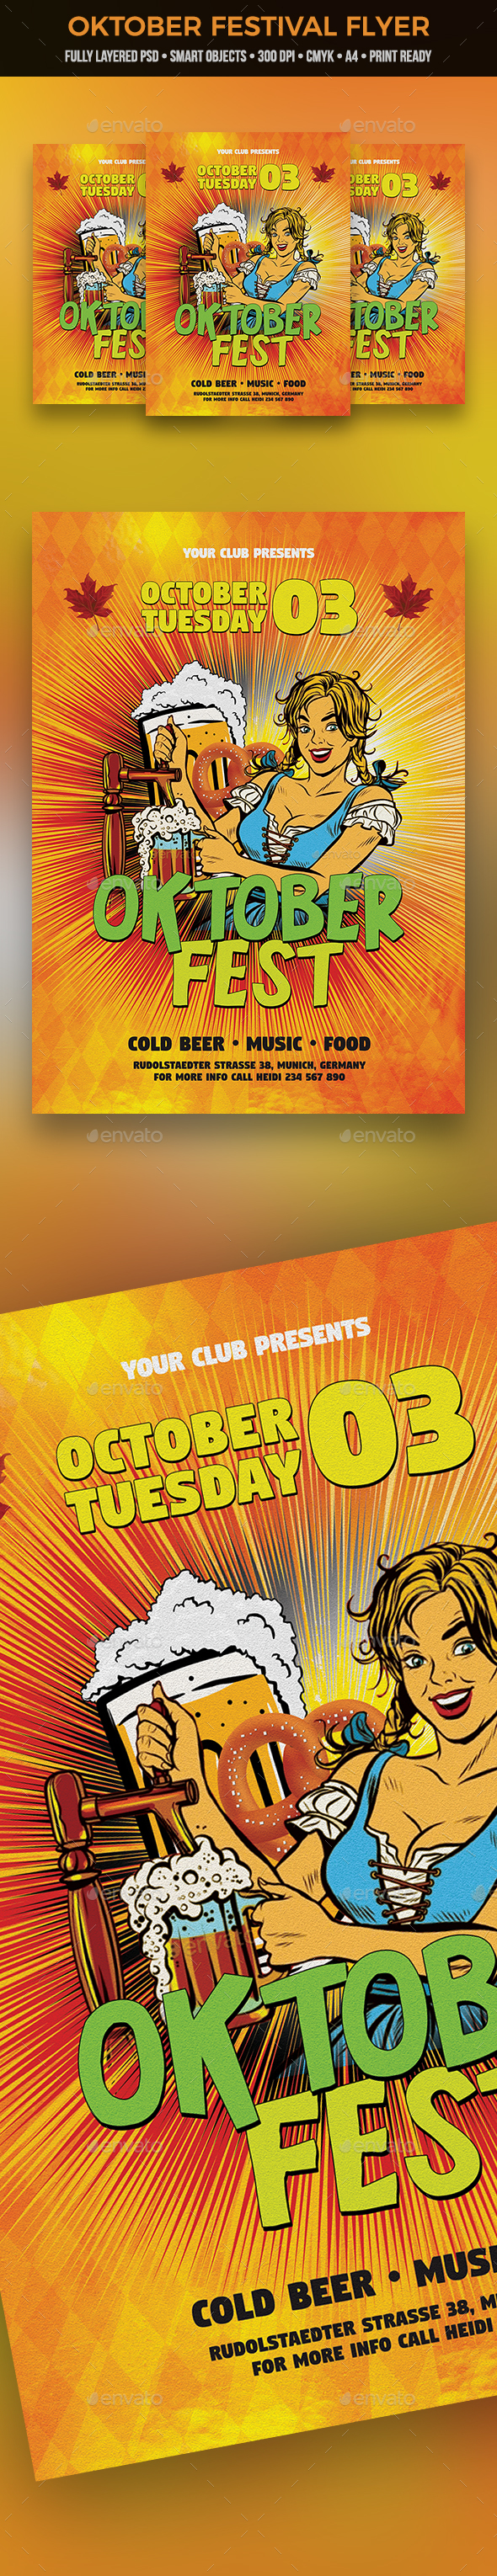 Oktober Festival Flyer - Clubs & Parties Events